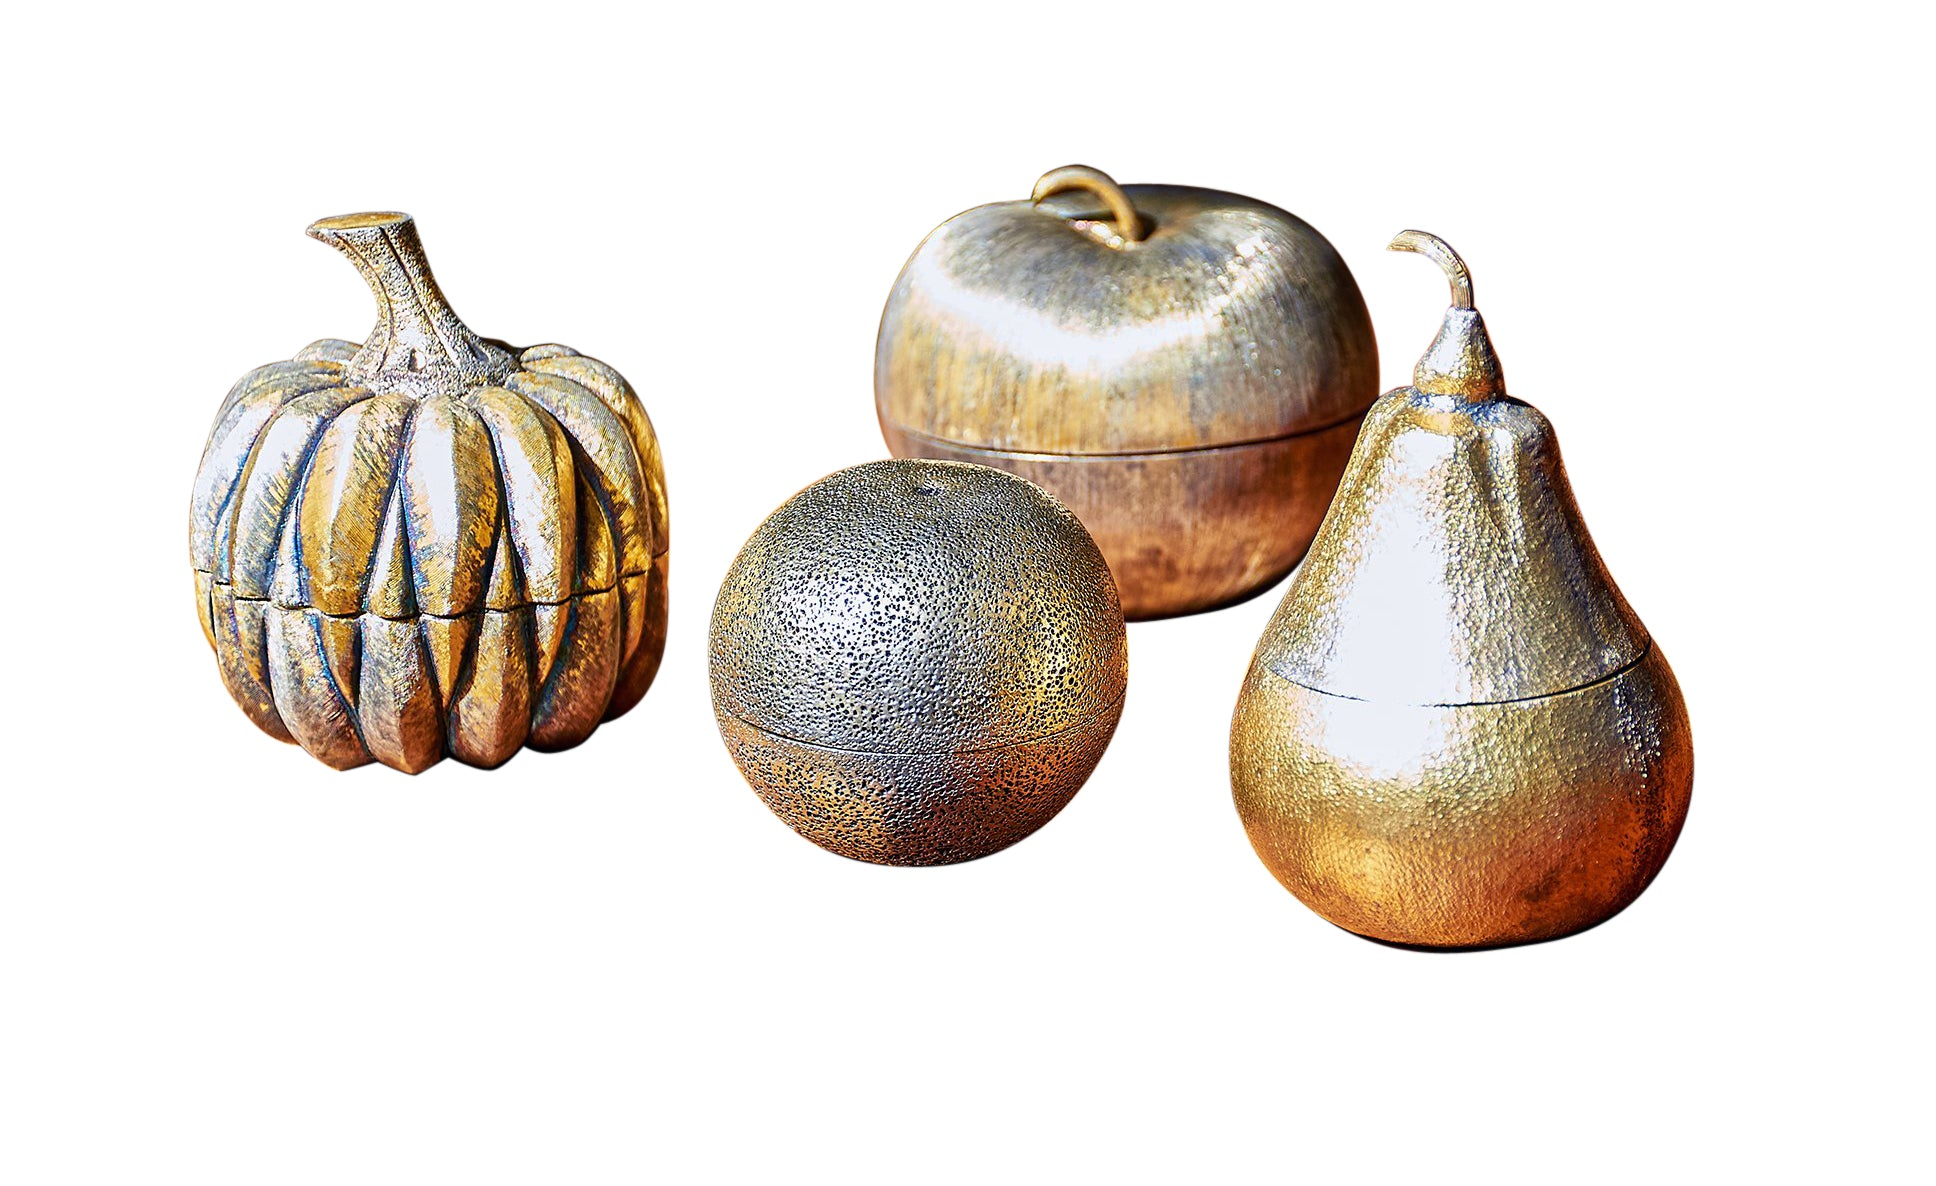 Collection of Tiffany & Co. Gilt Sterling Silver Fruit by Janna Thomas De Velarde, circa 1970's - The Space Detroit